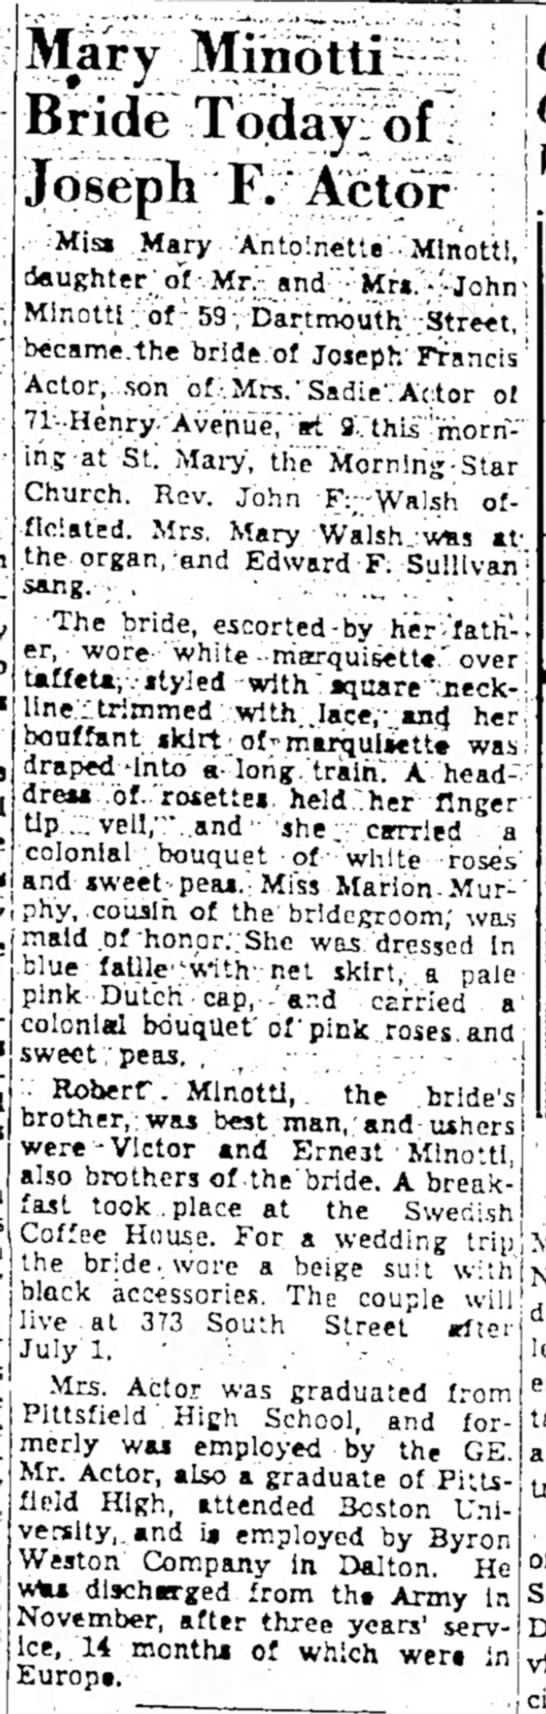 from the Berkshire Eagle June 15, 1946 - the' jov- polic -who Mary Minotti Bride Today-...